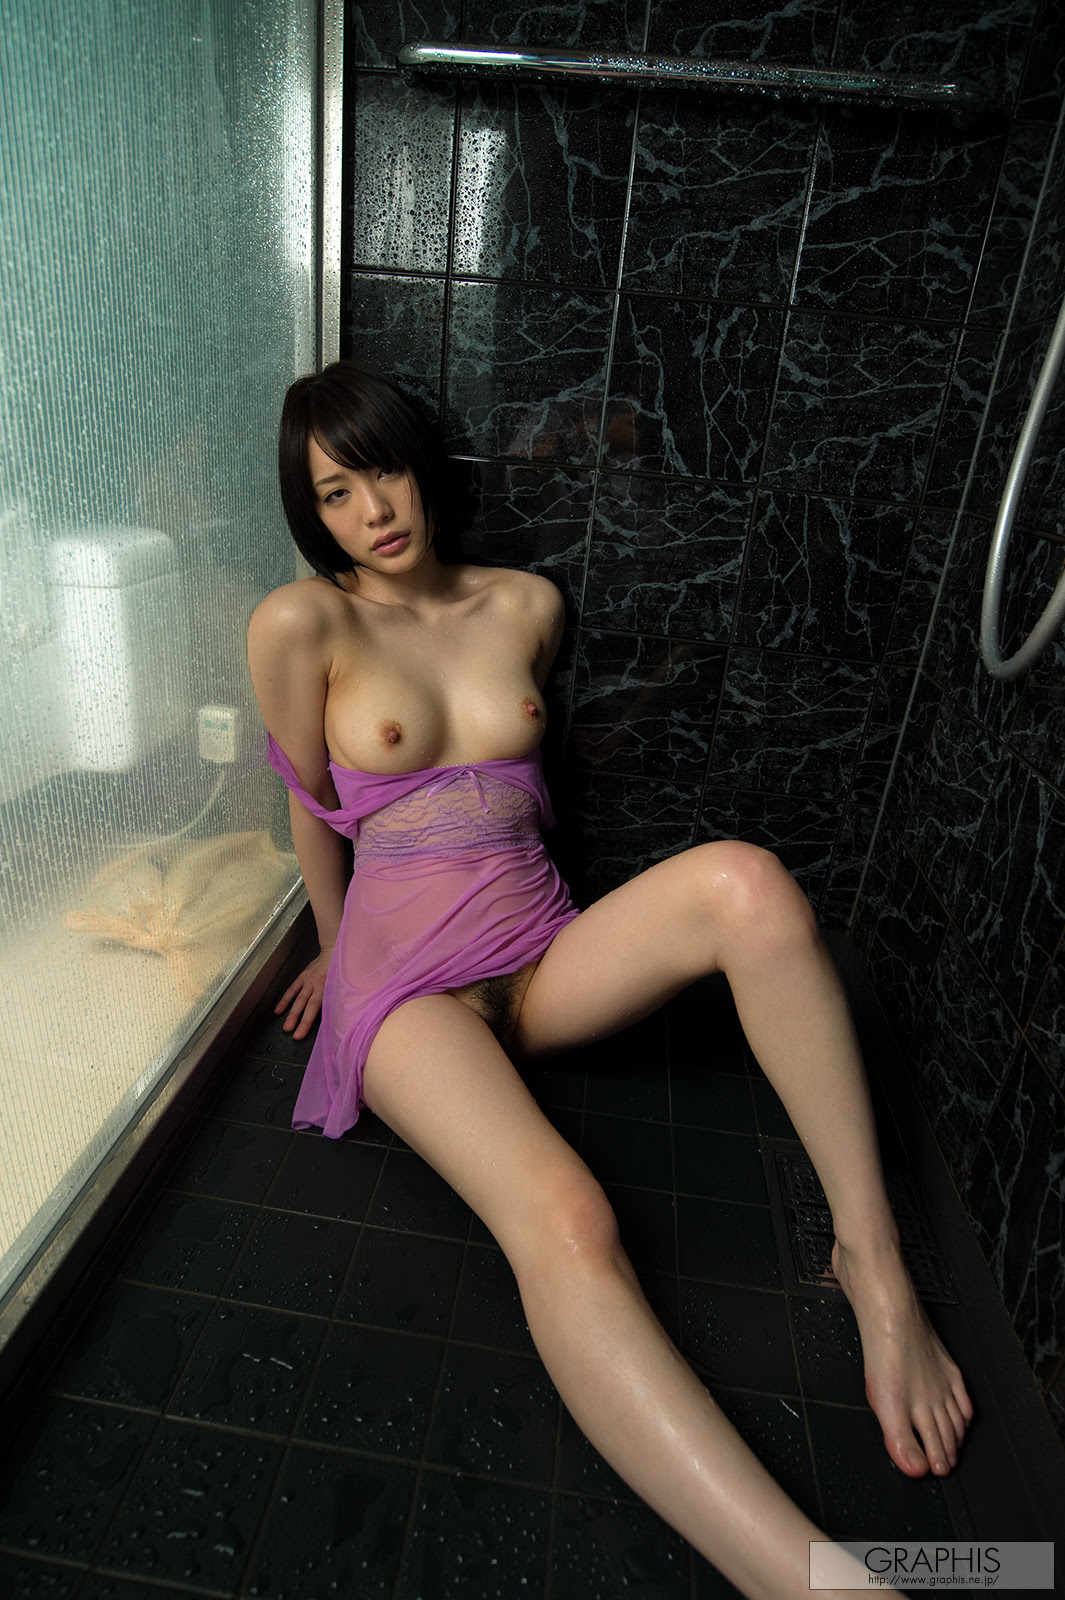 Airi Suzumura | PhimVu Blog | See Through & Nude | PhimVu Blog